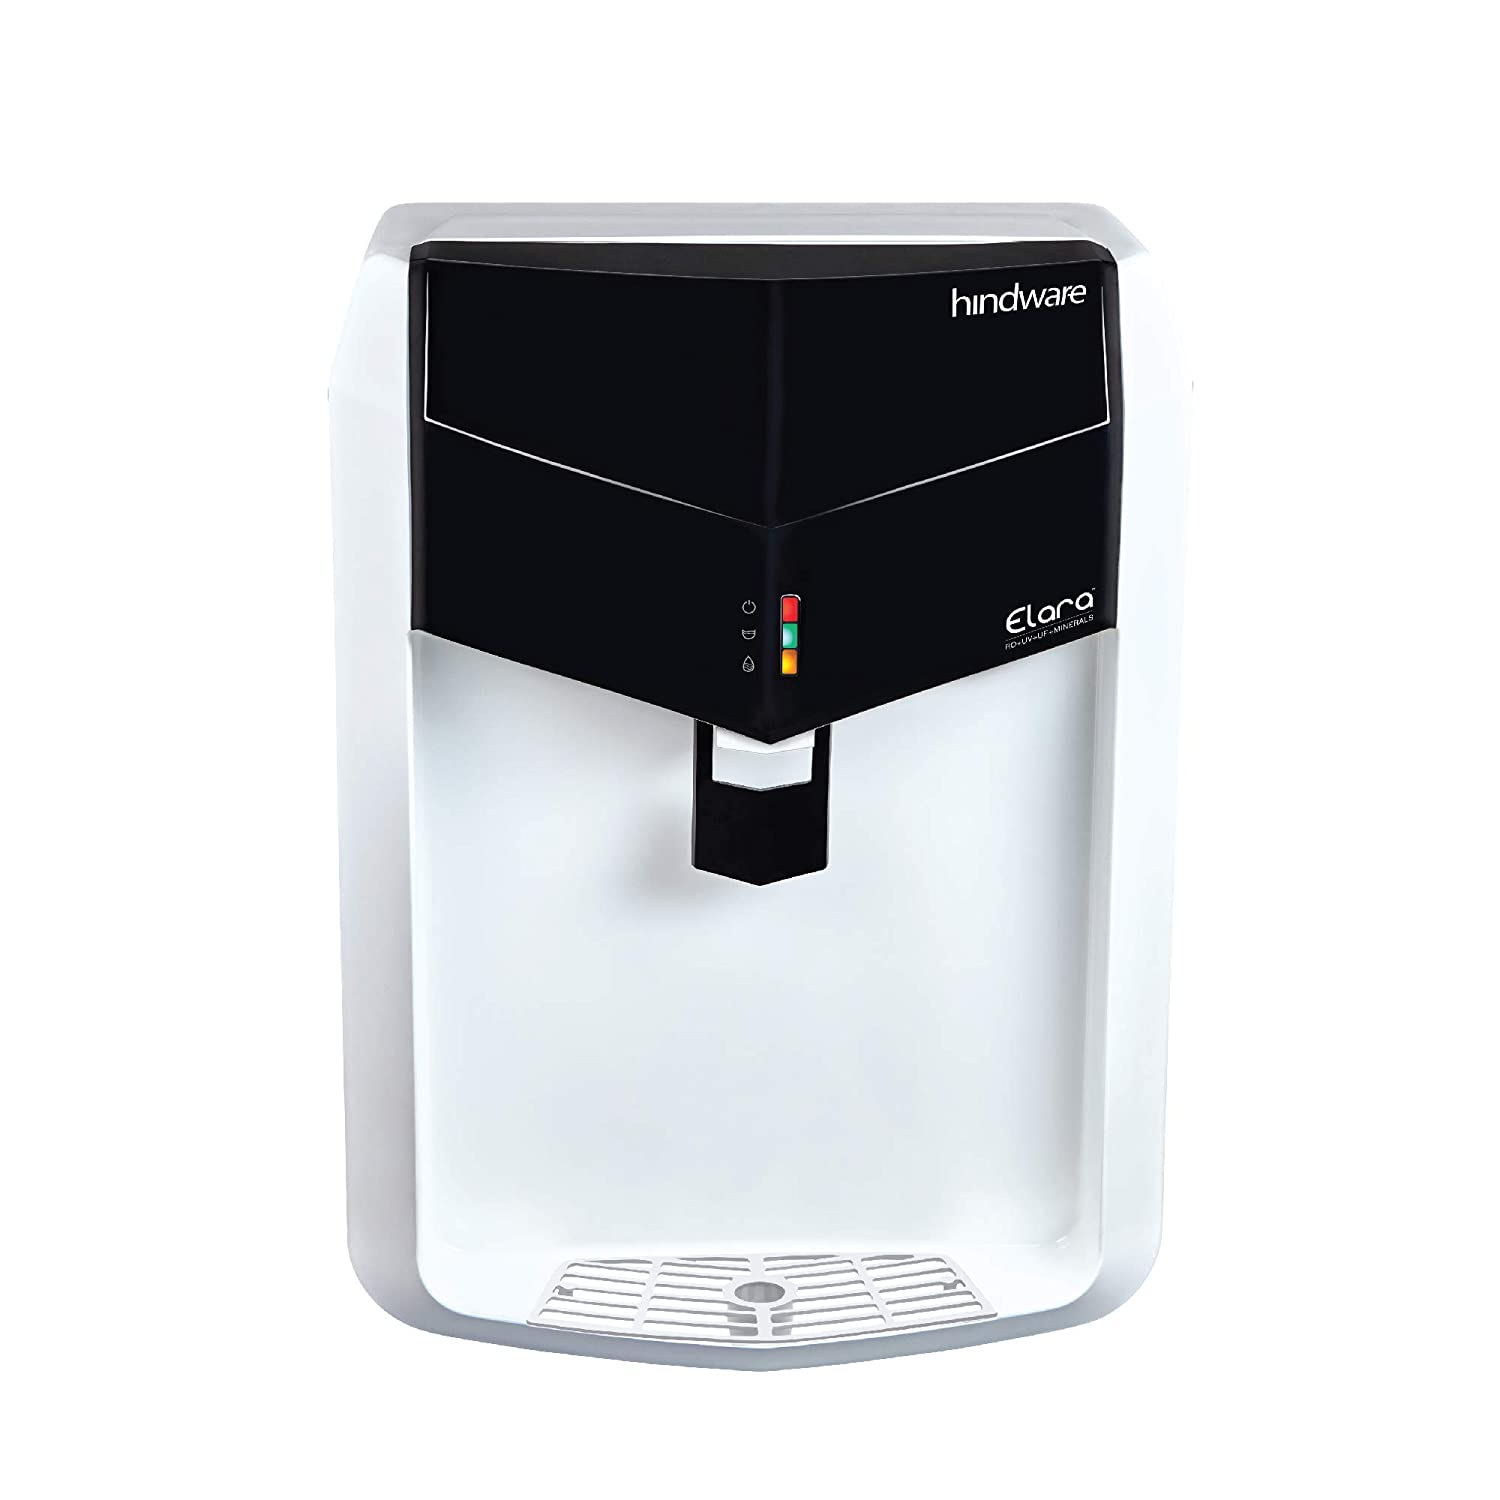 Hindware Elara RO+UV+UF+Mineral Water Purifier (White and Black)